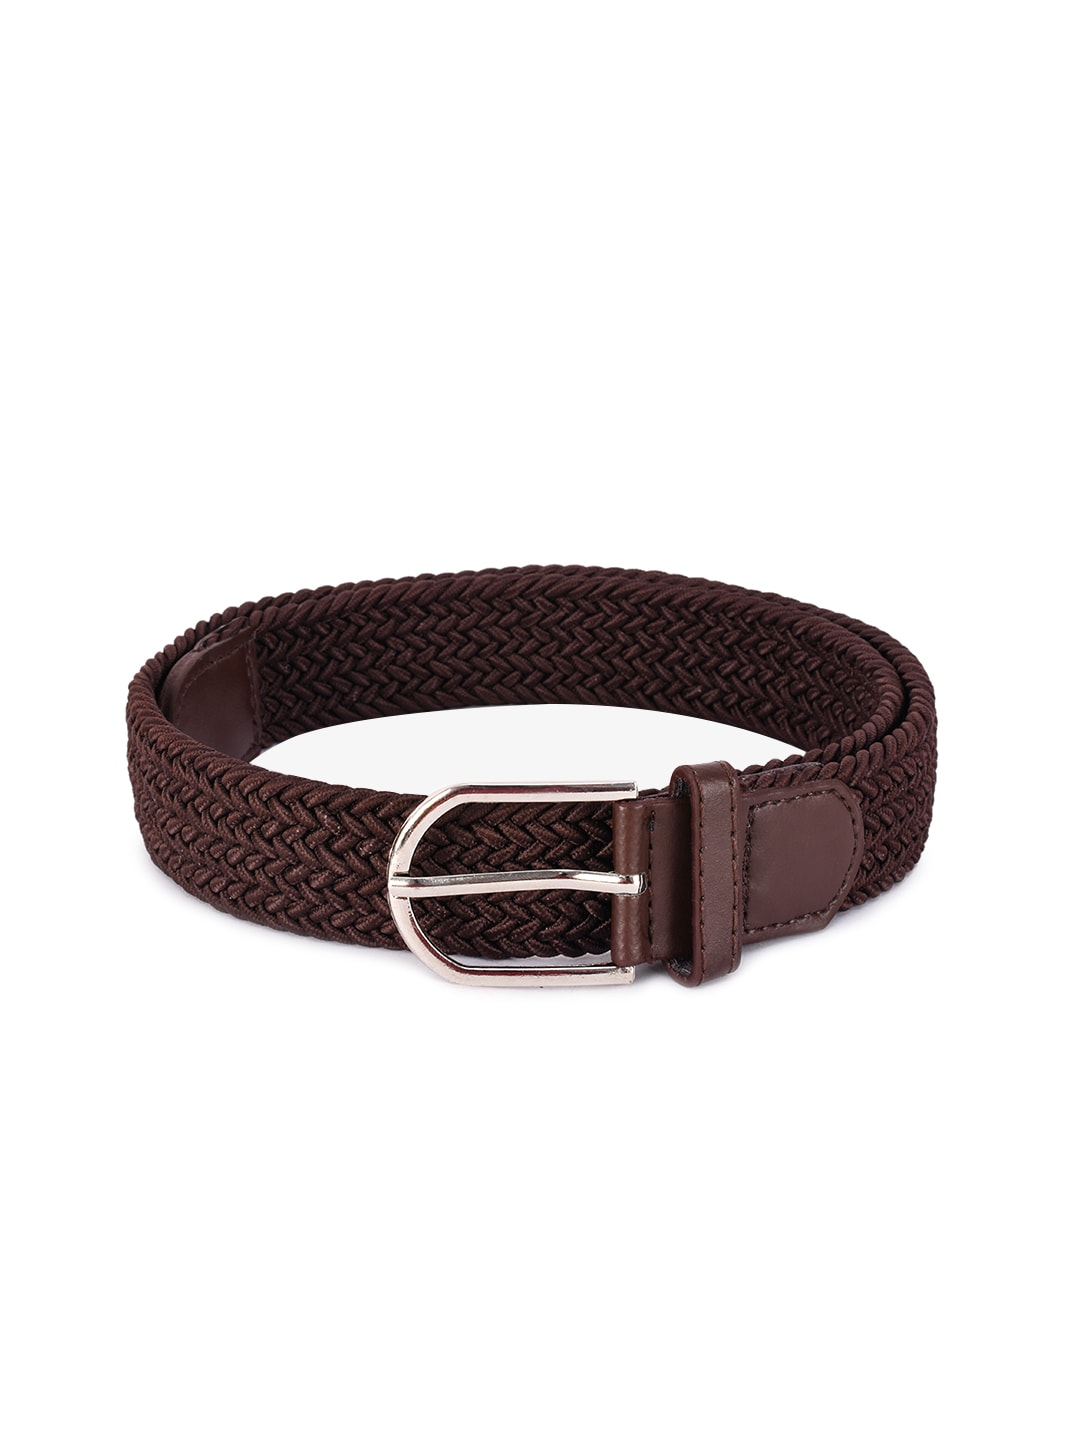 ff563bd3a07 Belt For Men - Buy Men Belts Online in India at Best price